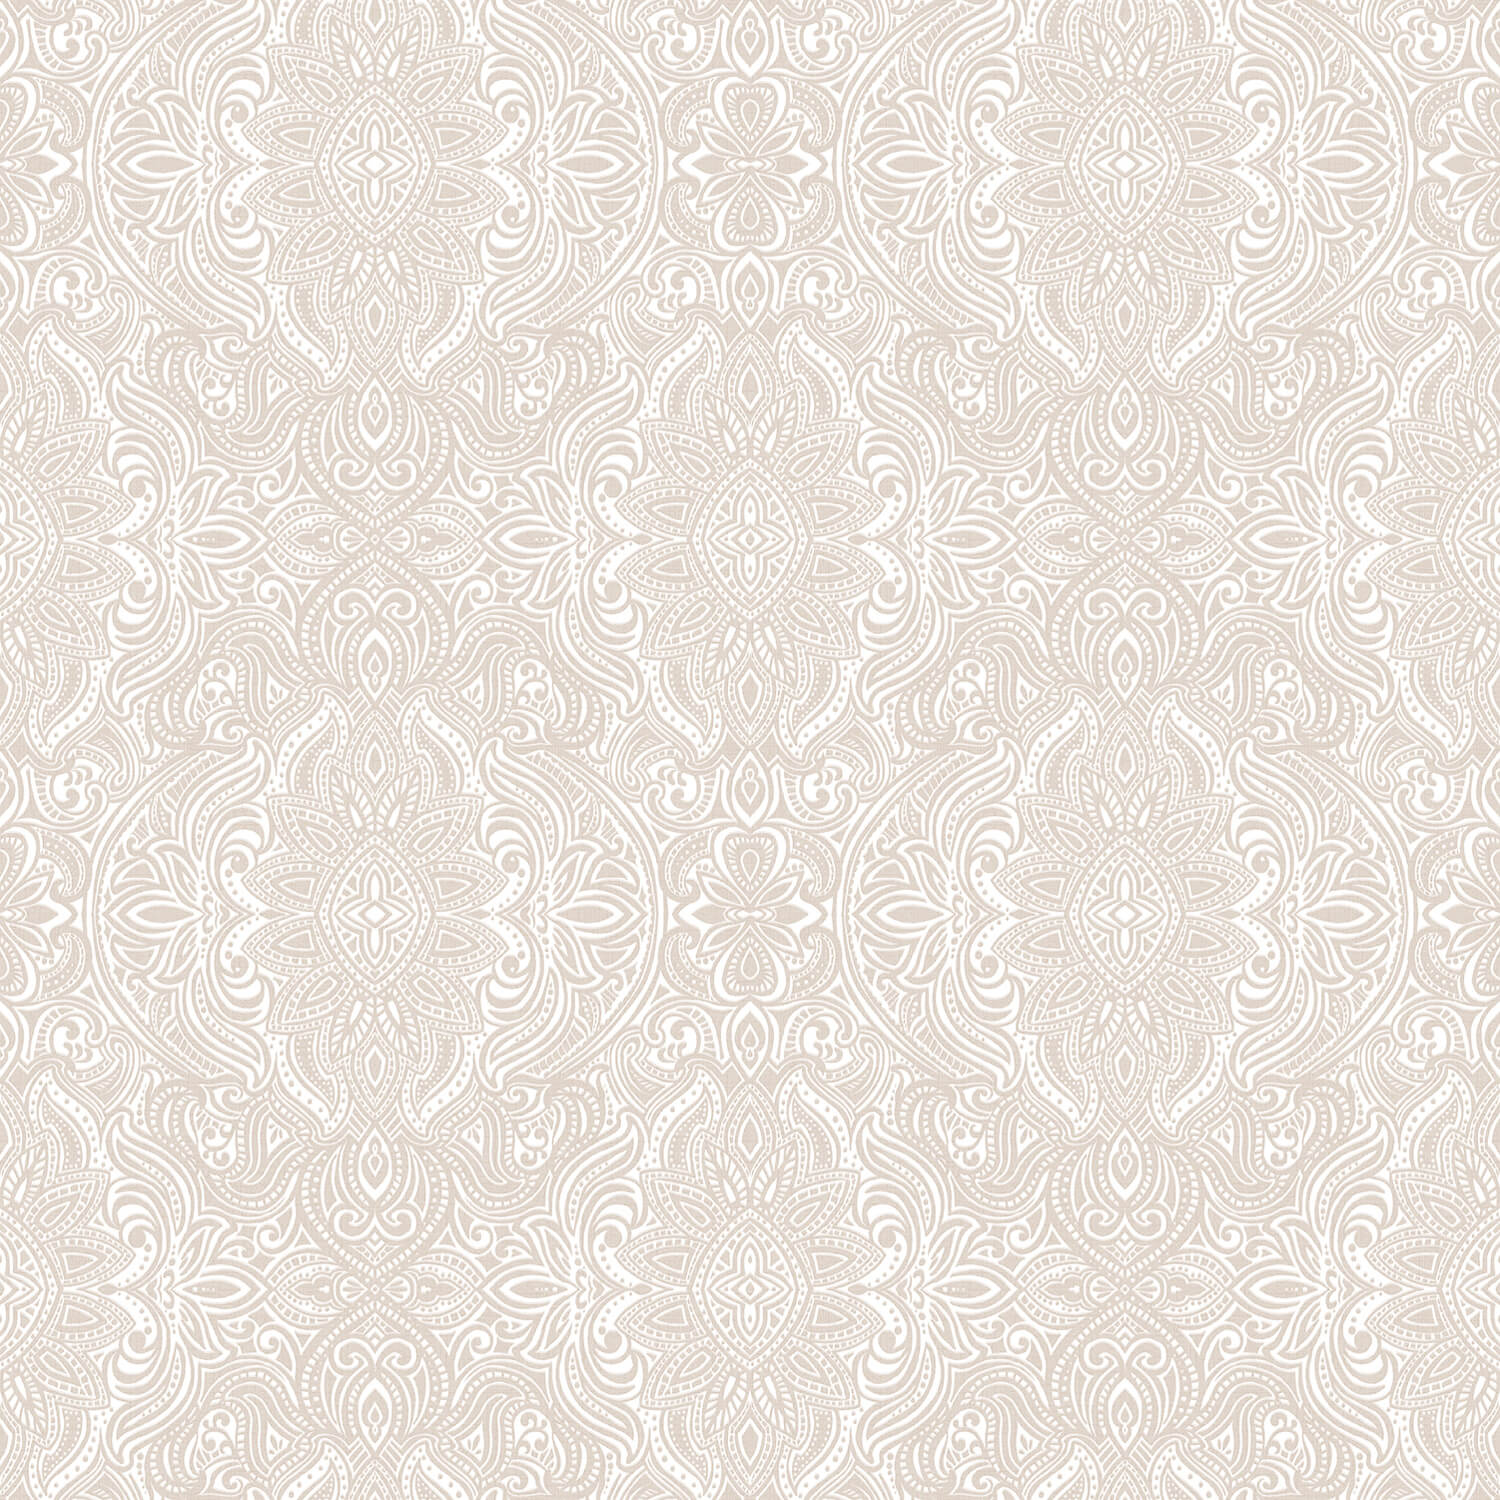 Image of Galerie Classic Damask Wallpaper, Taupe